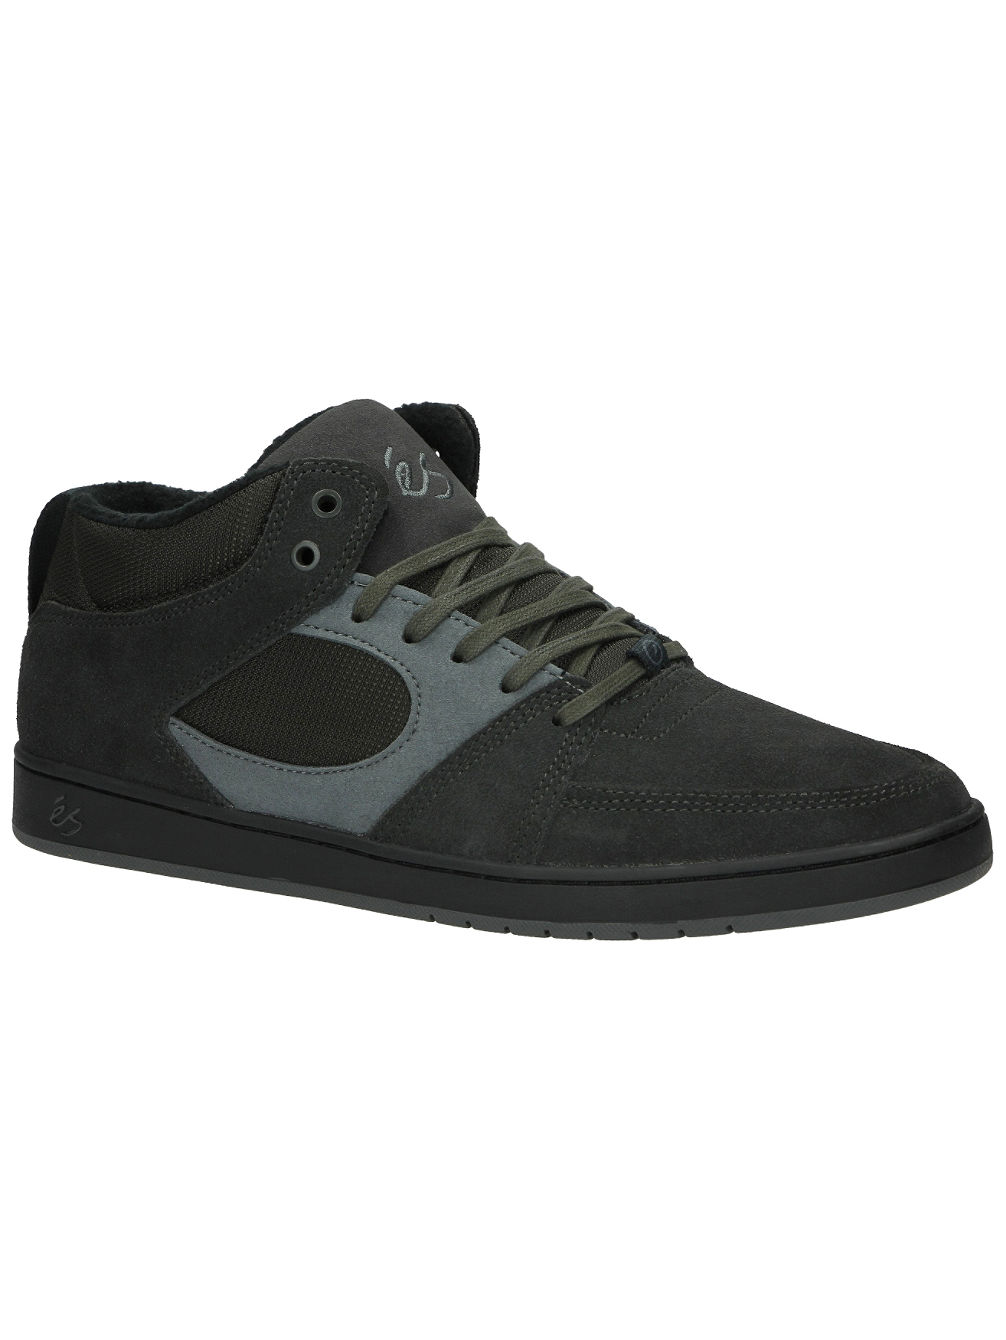 accel-slim-mid-skate-shoes